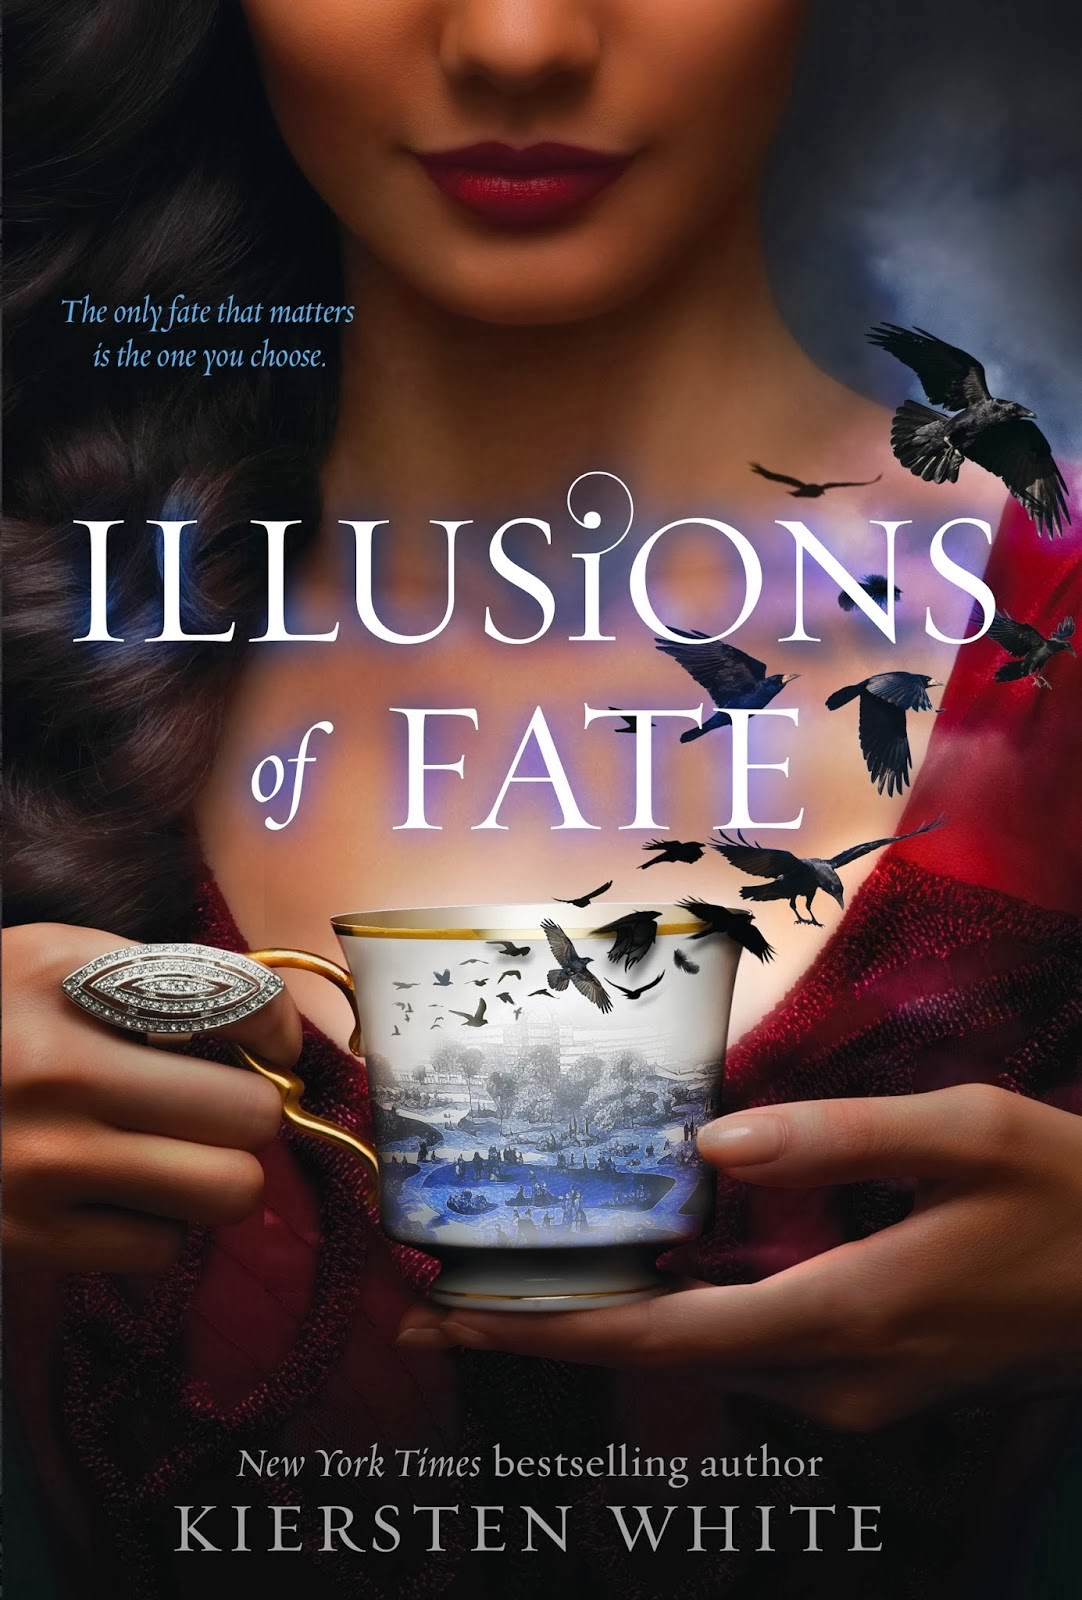 http://www.amazon.it/Illusions-Fate-Kiersten-White-ebook/dp/B00H7LUQ5O/ref=sr_1_1?ie=UTF8&qid=1410859789&sr=8-1&keywords=illusions+of+fate